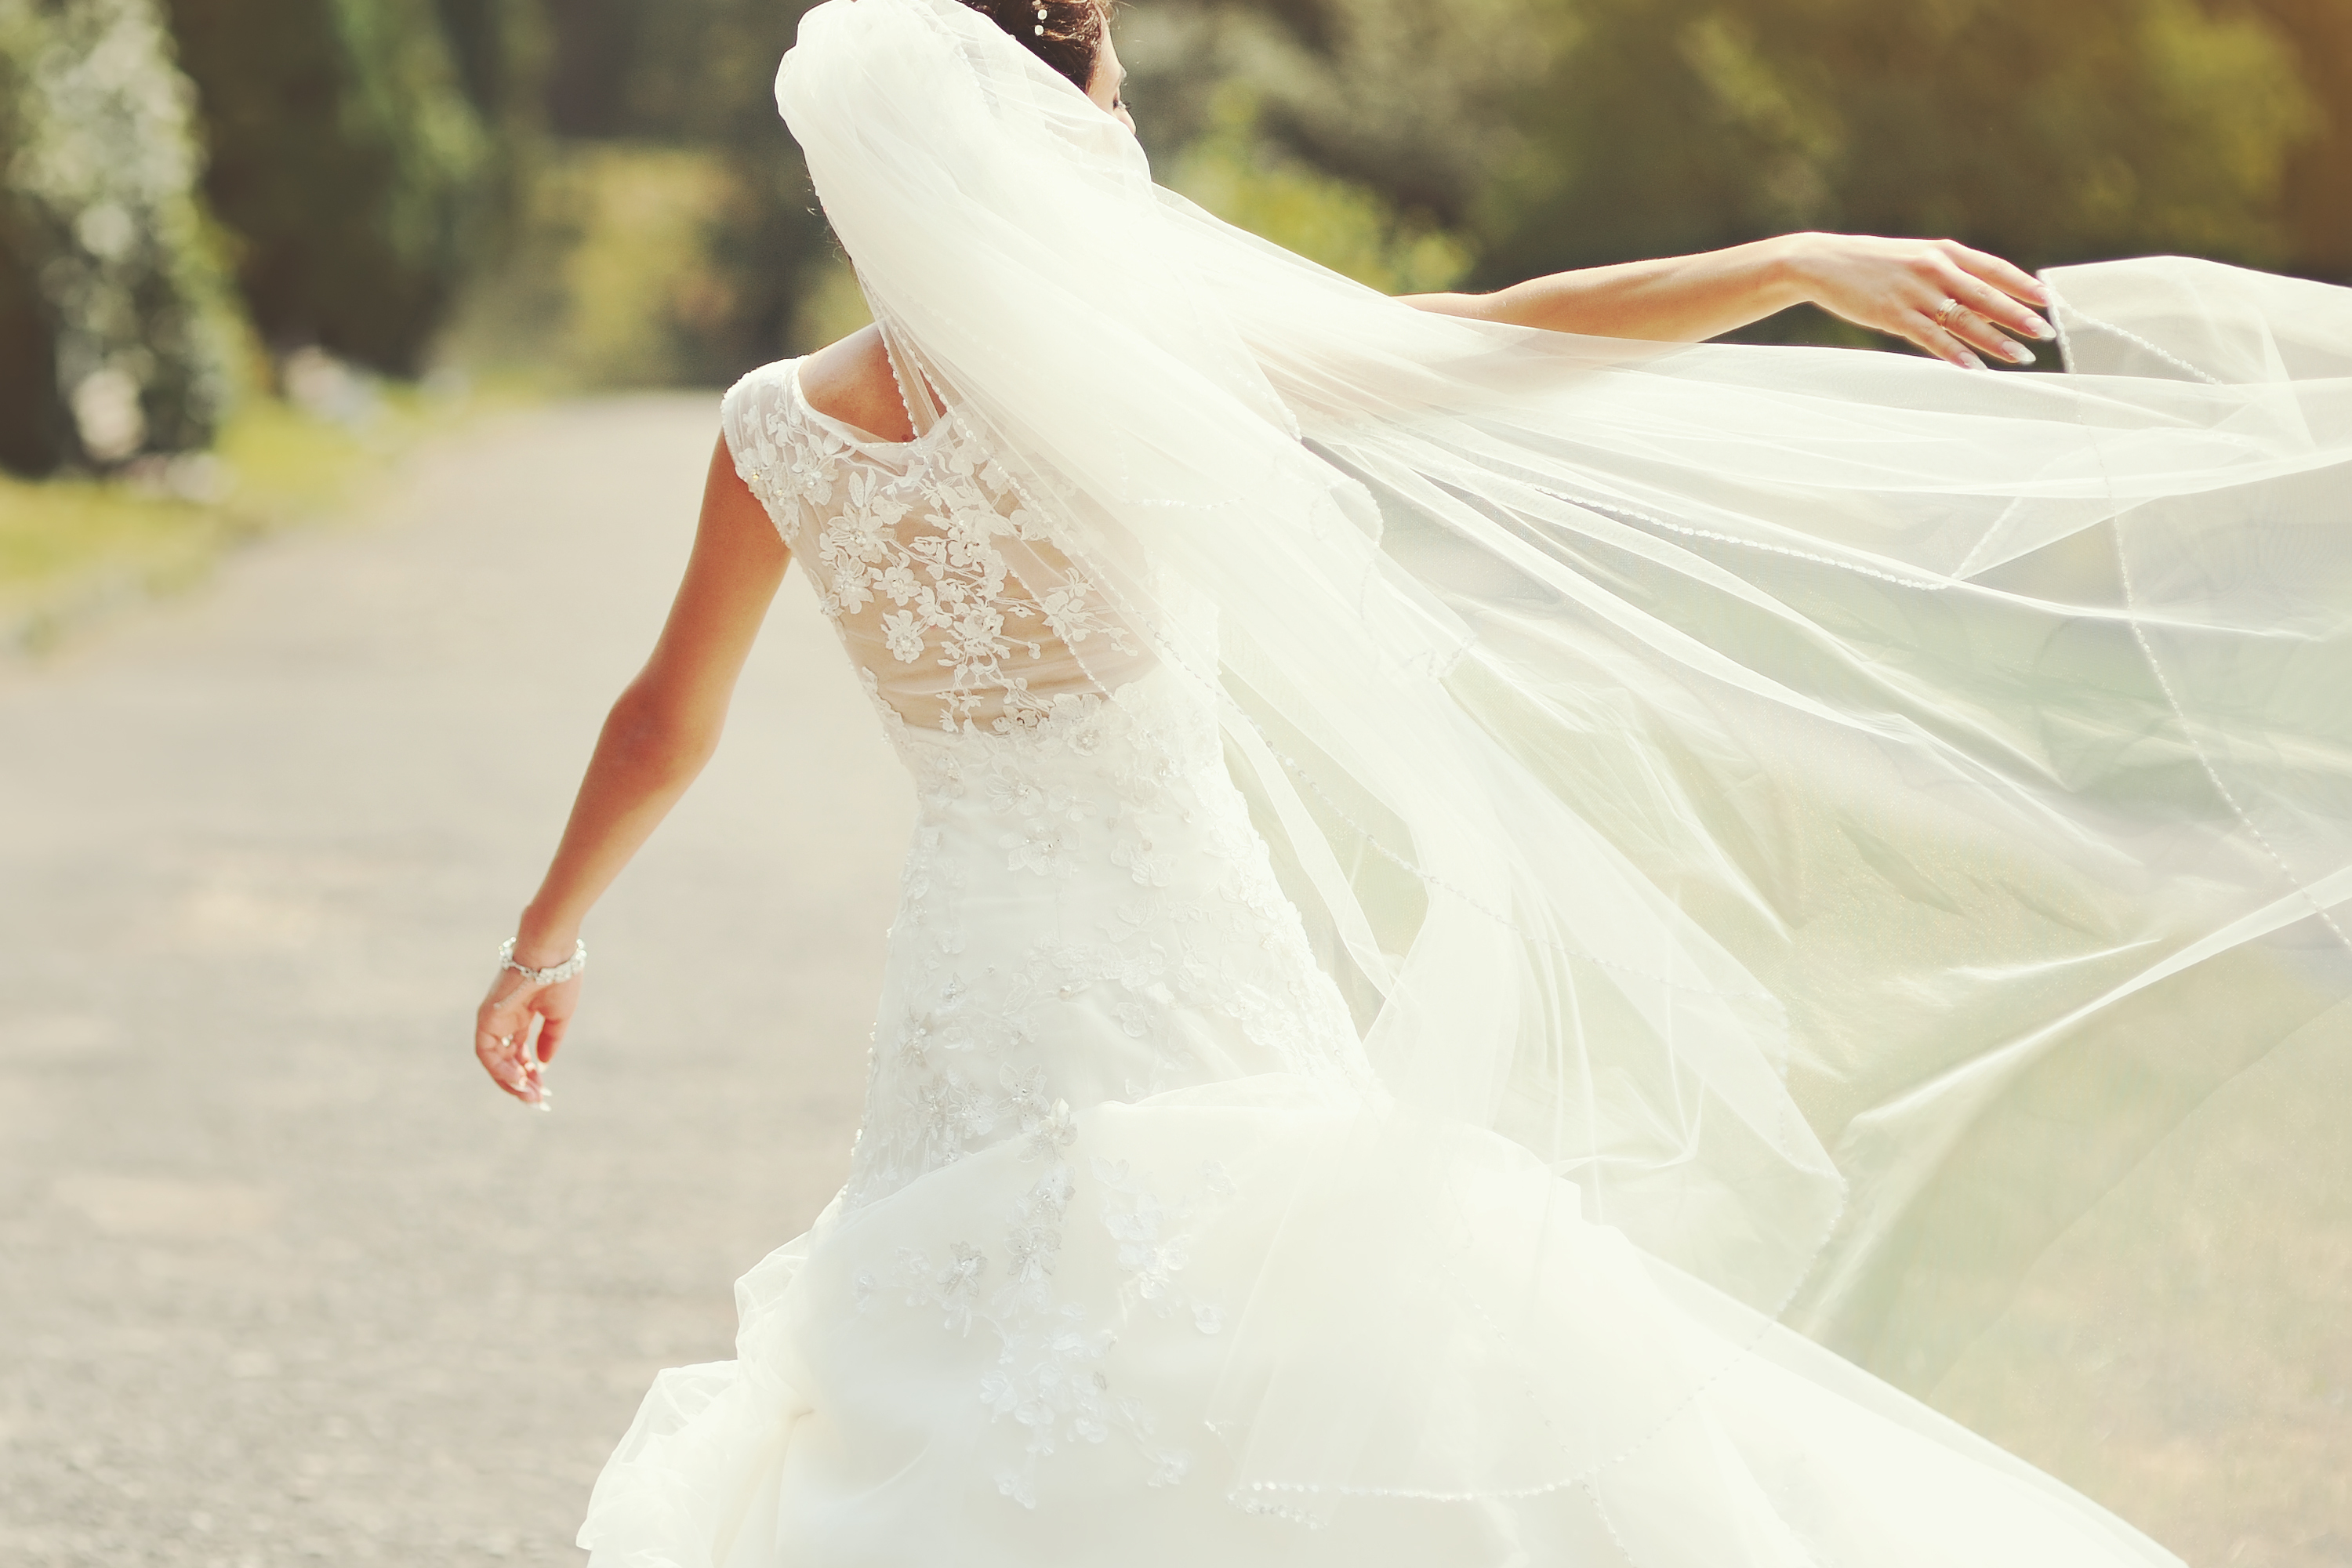 Picking the perfect veil for your wedding can be overwhelming. My guide to veil lengths will help you decide which is right for you. Having a full length veil can really help dress up the back of your dress.